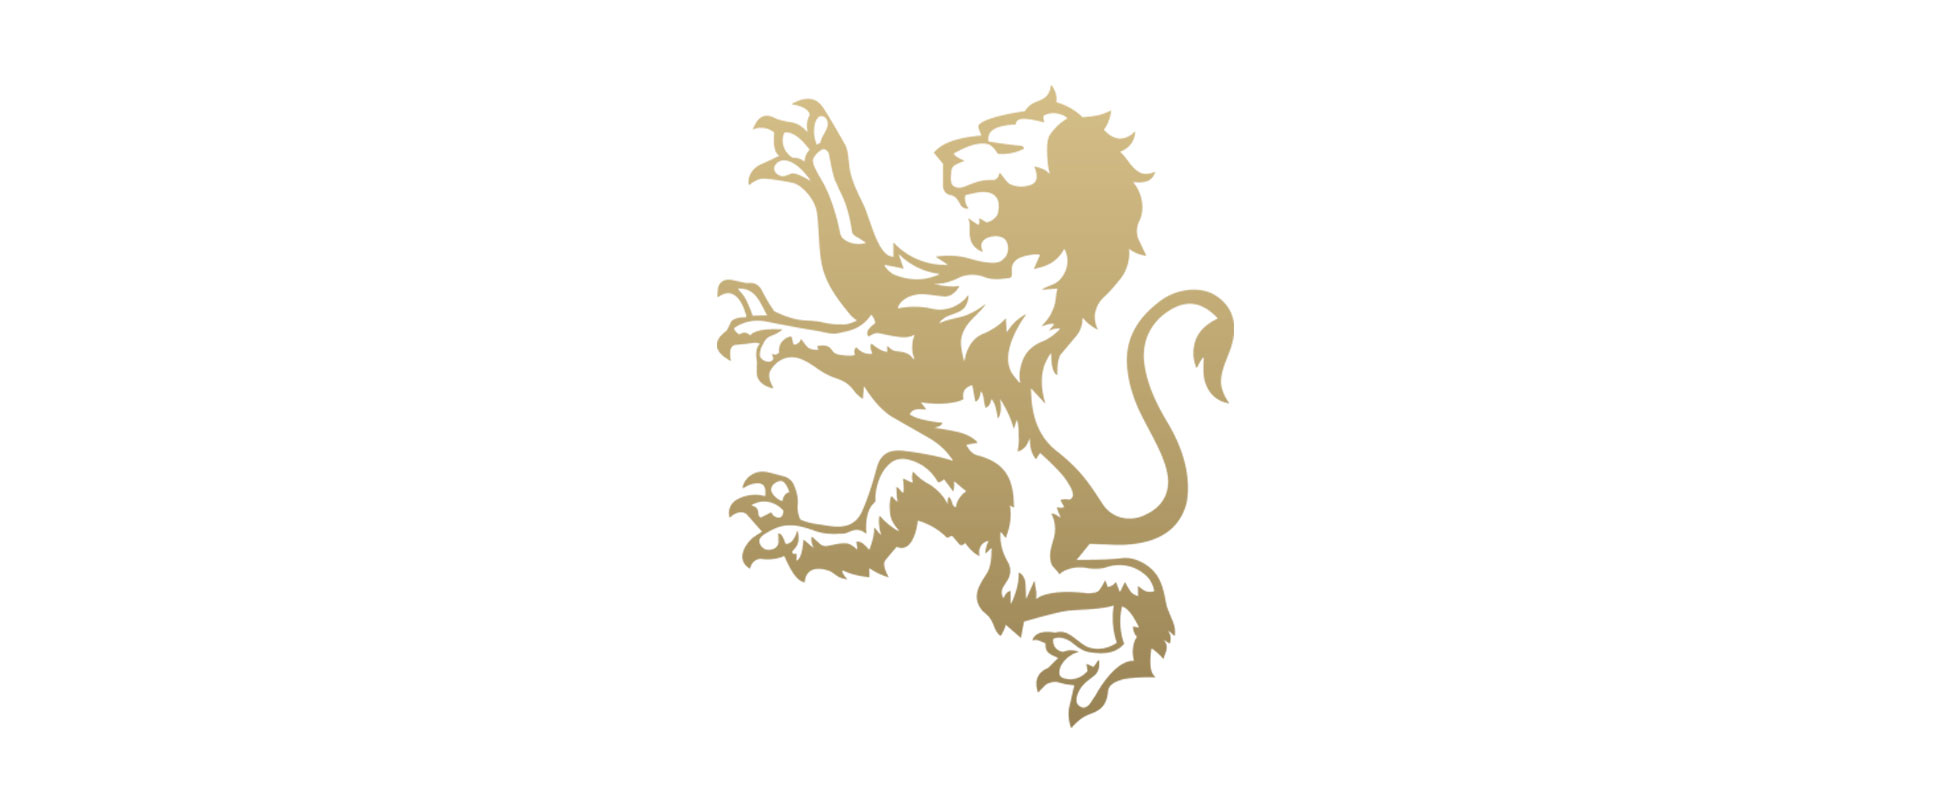 bassetgold-logo-redesign-london-lion-mark-gold.jpg